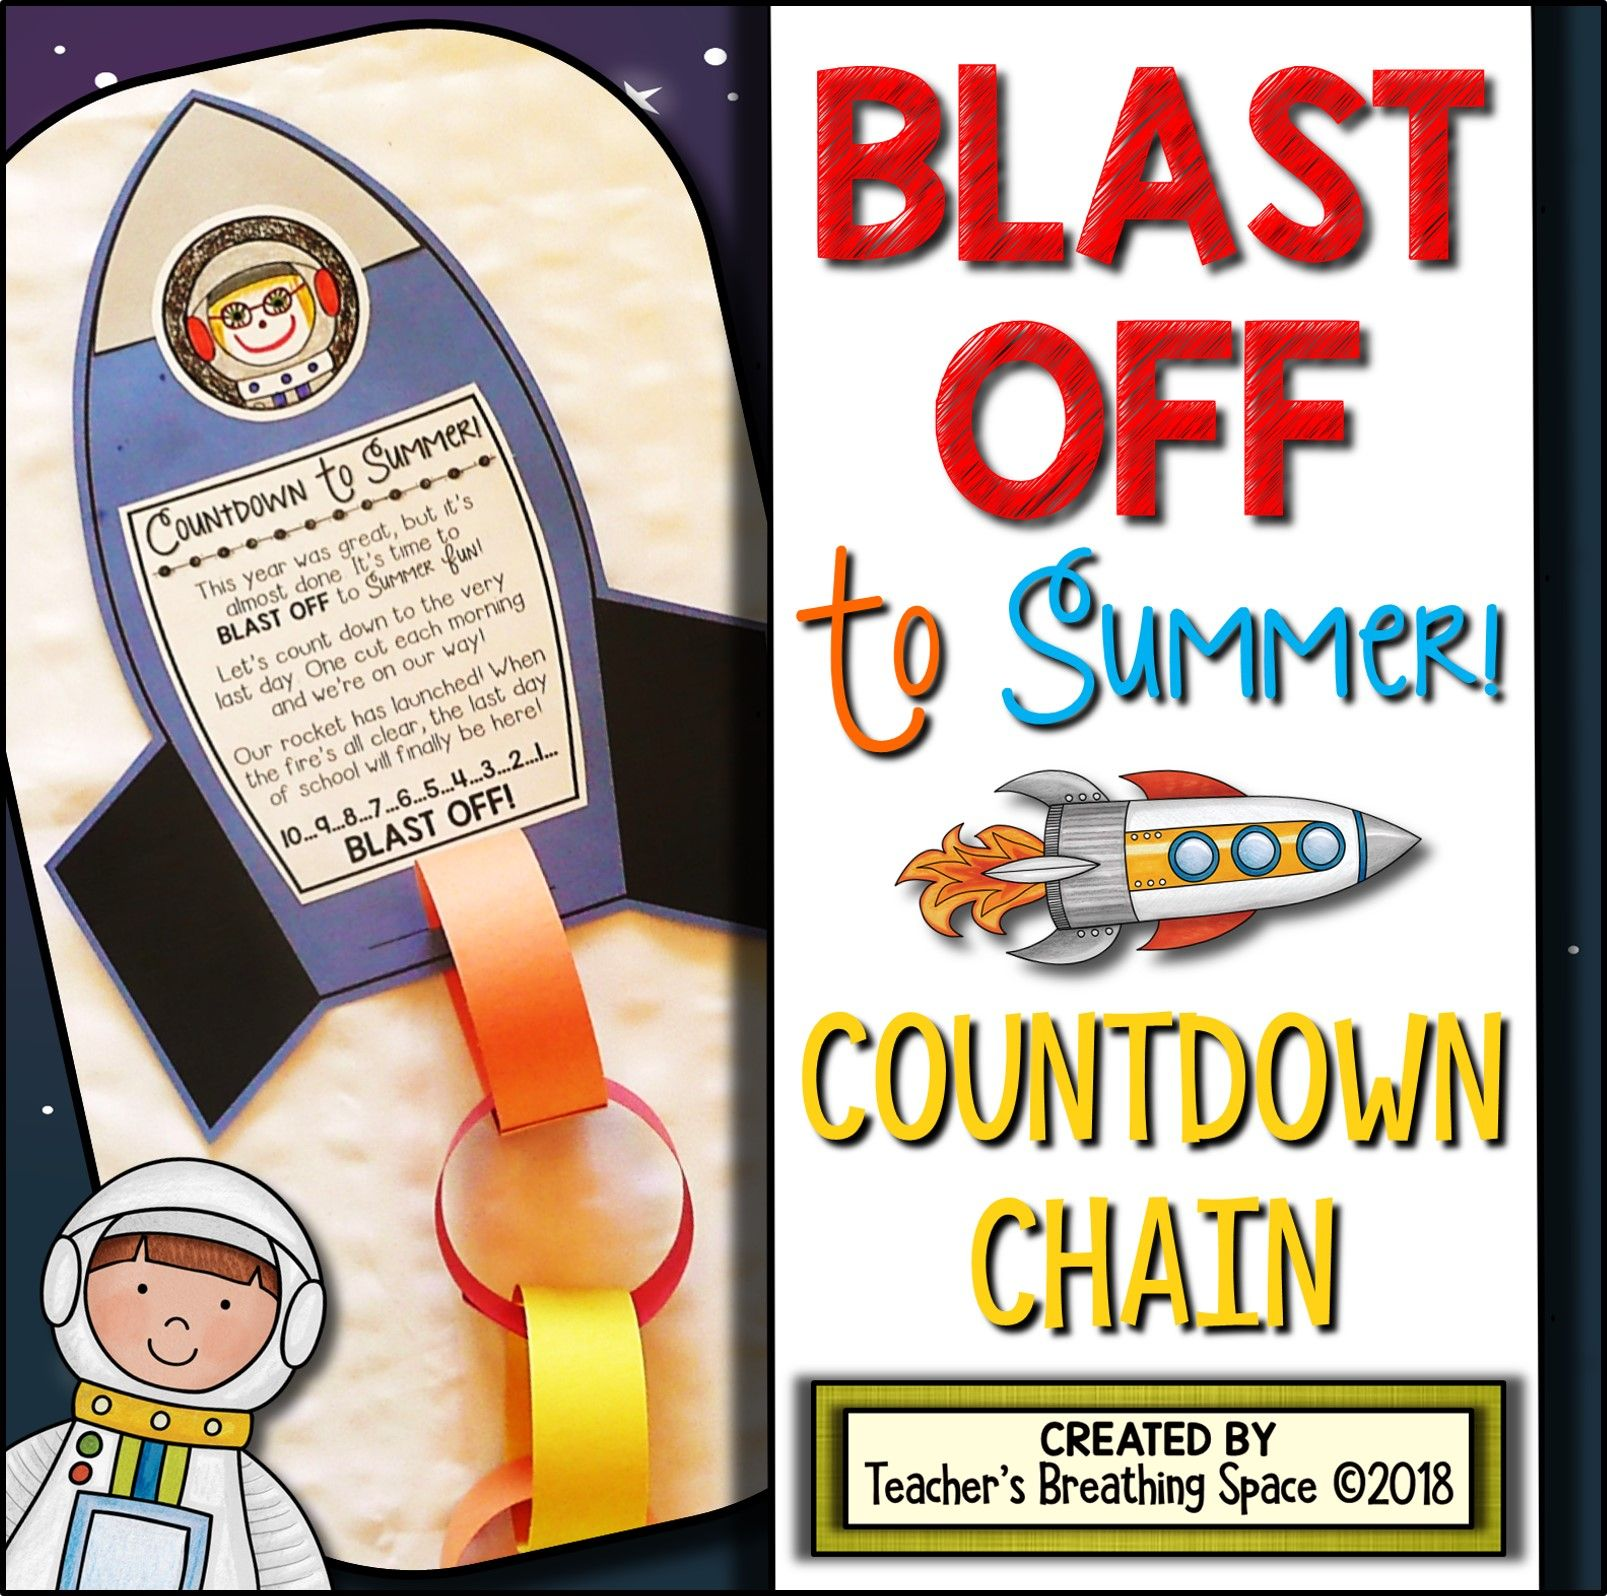 Summer Countdown Chain Blast Off To The Last Day Of